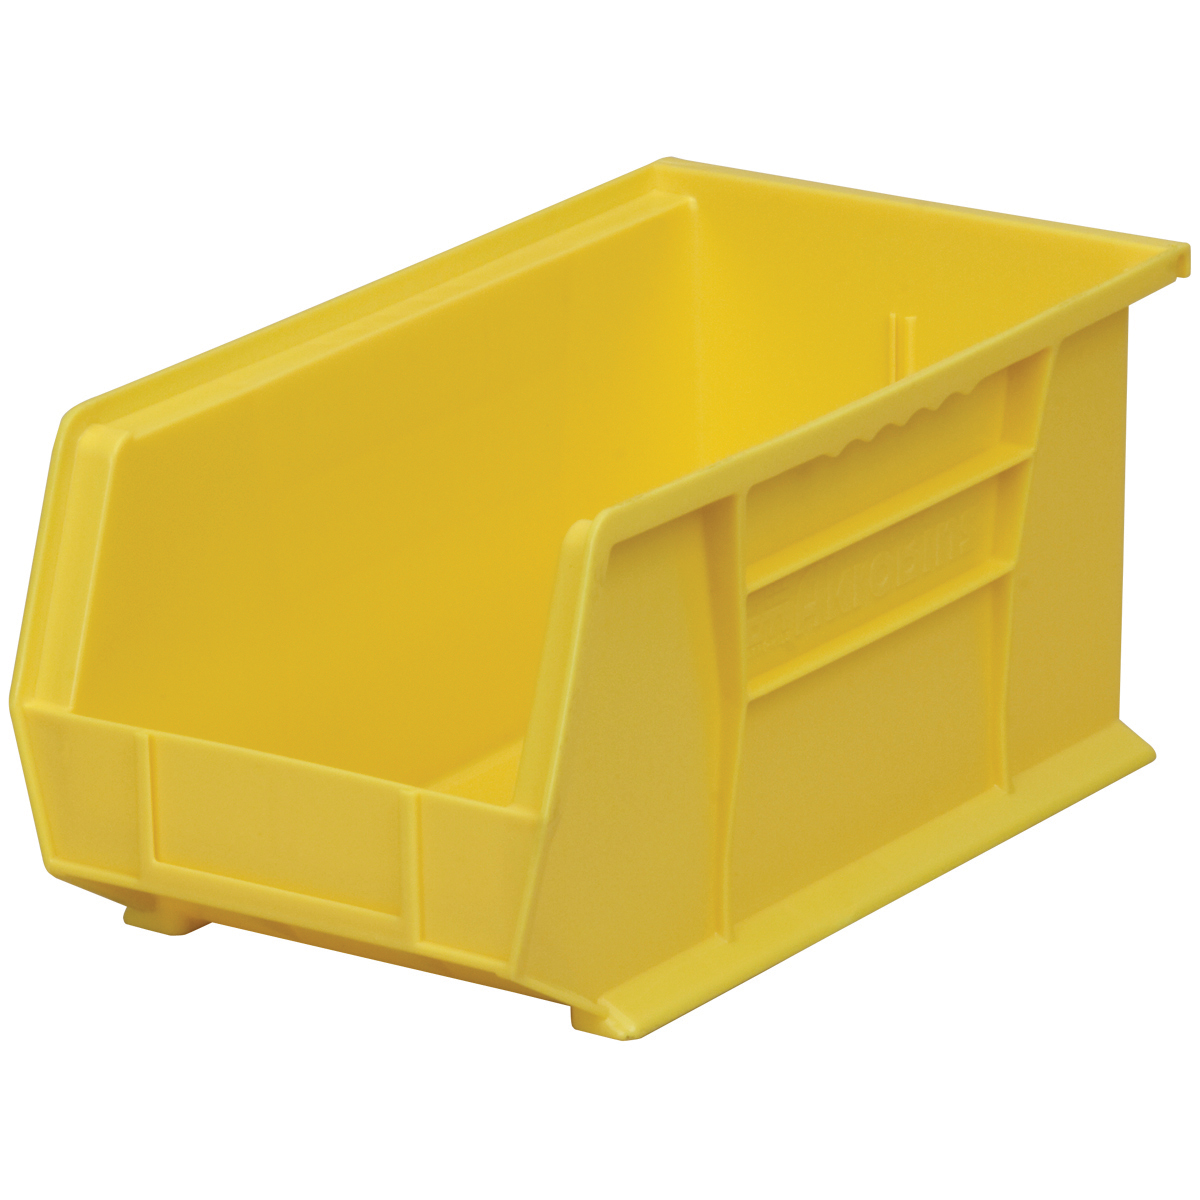 AkroBin 14-3/4 x 8-1/4 x 7, Yellow (30240YELLO).  This item sold in carton quantities of 12.